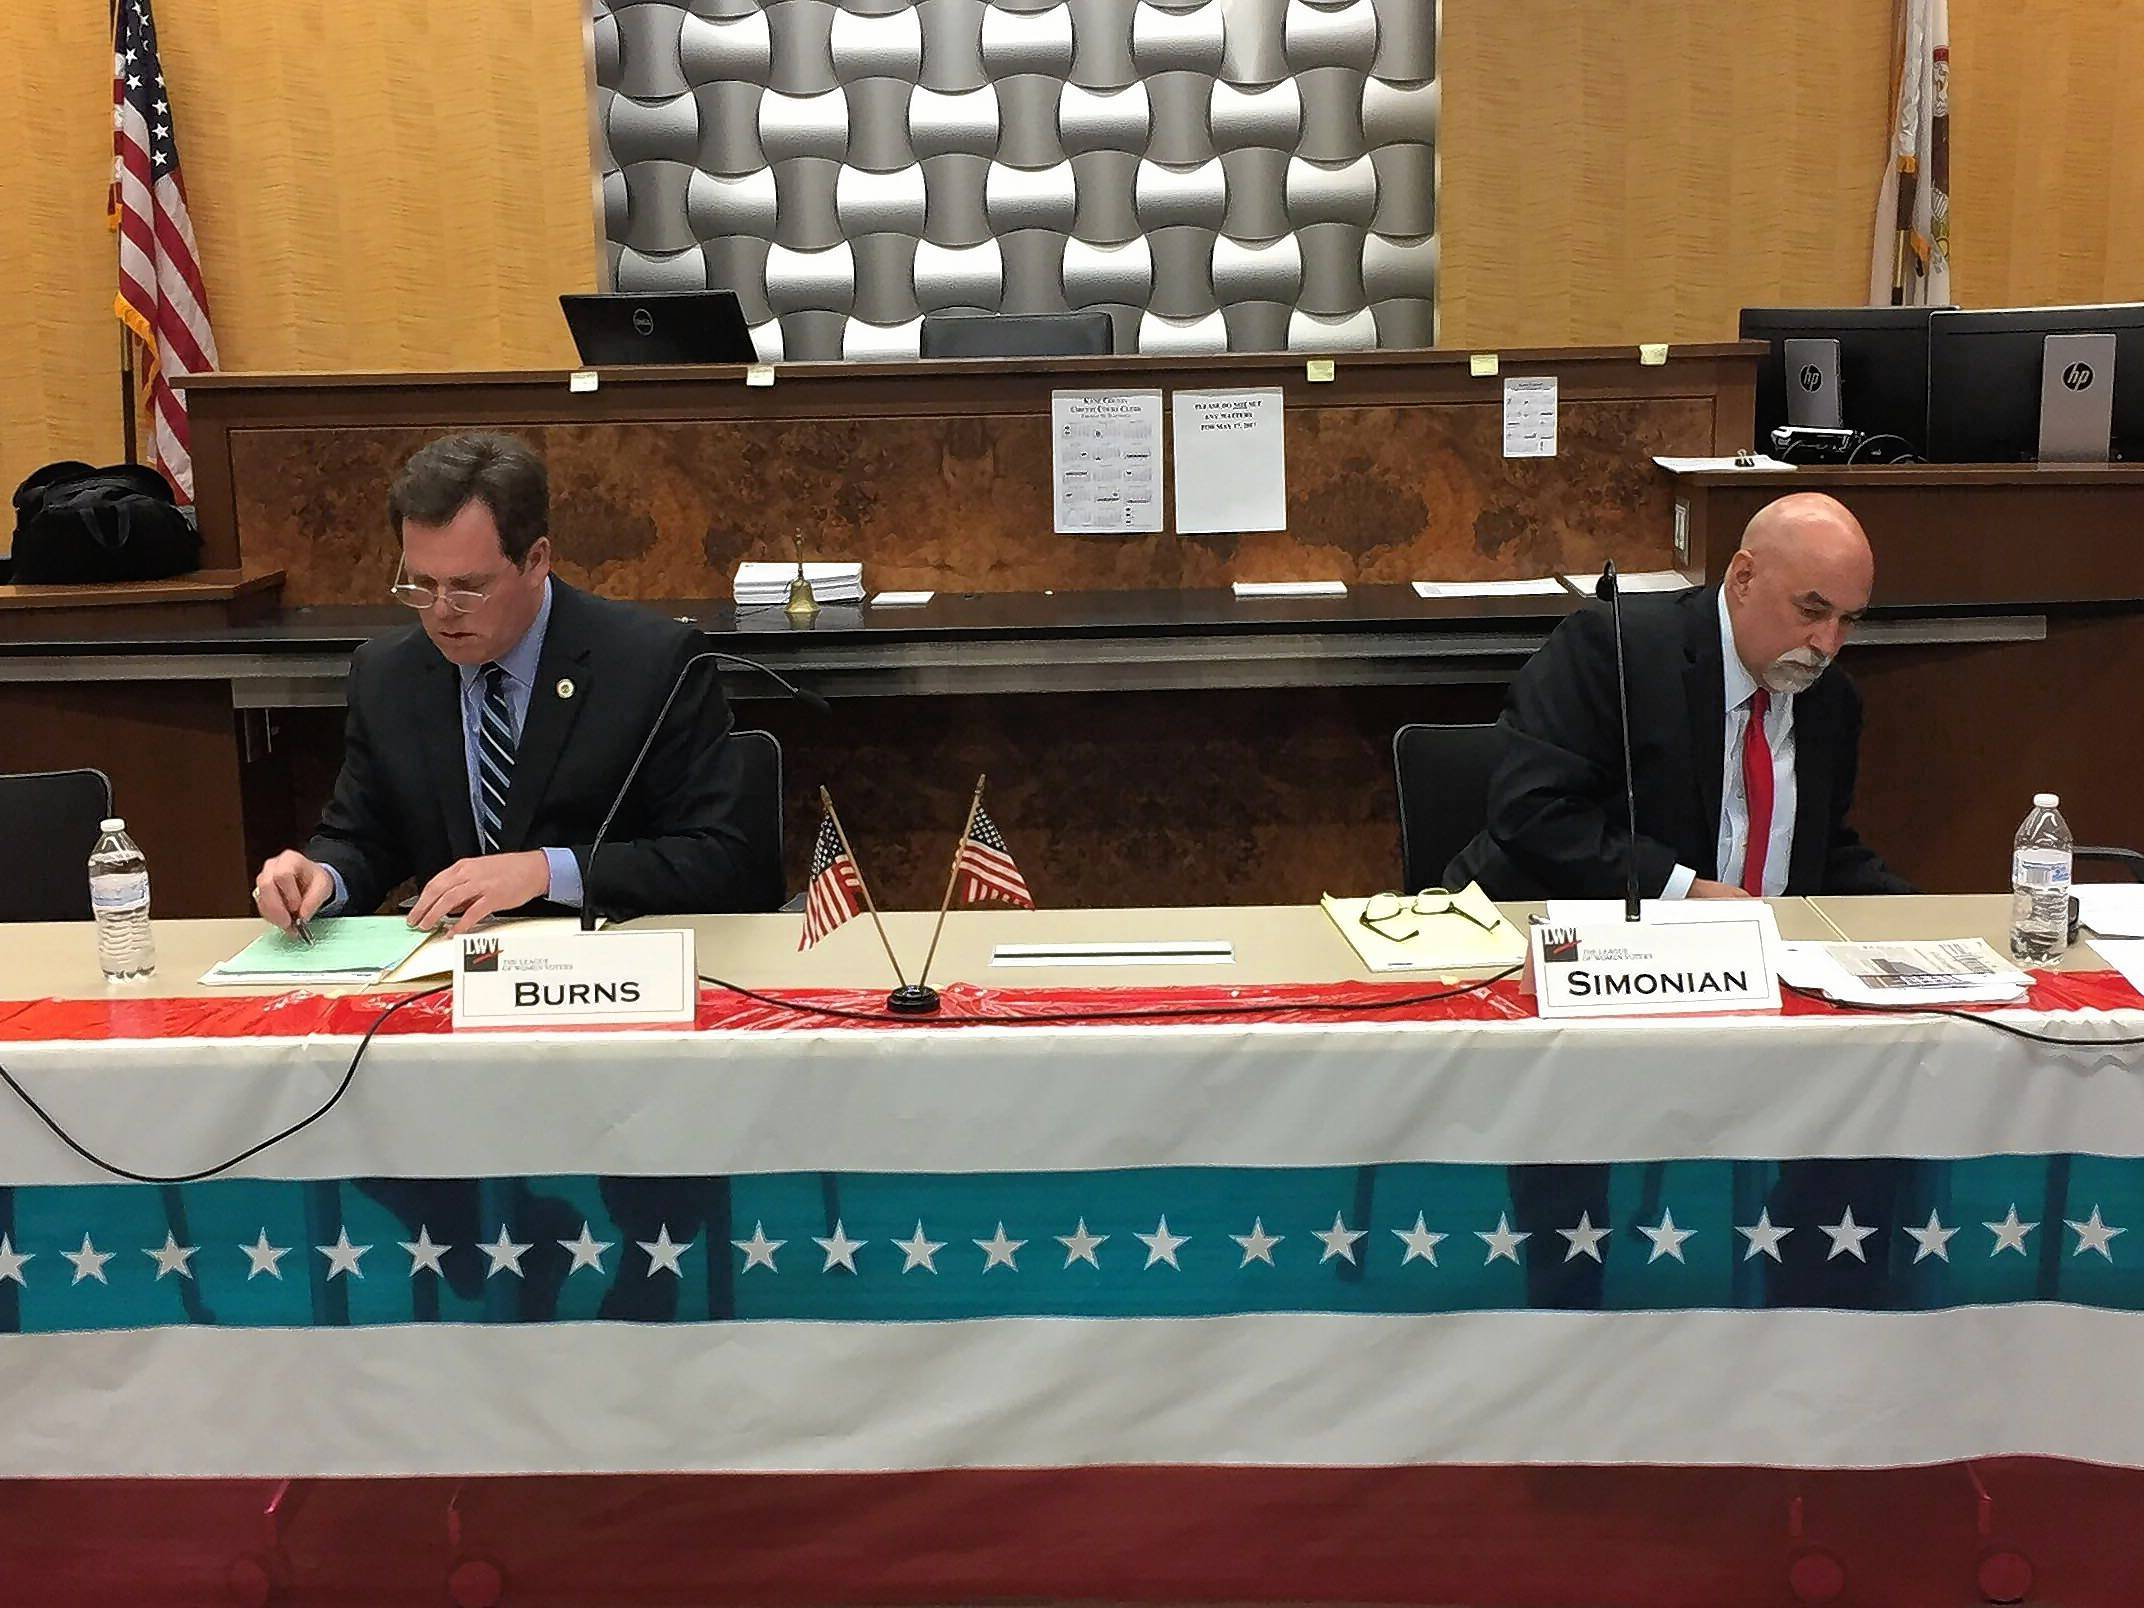 Geneva Mayor Kevin Burns, left, and opponent Alderman Tom Simonian, prepare for their questioning at a League of Women Voters Central Kane County forum Tuesday.